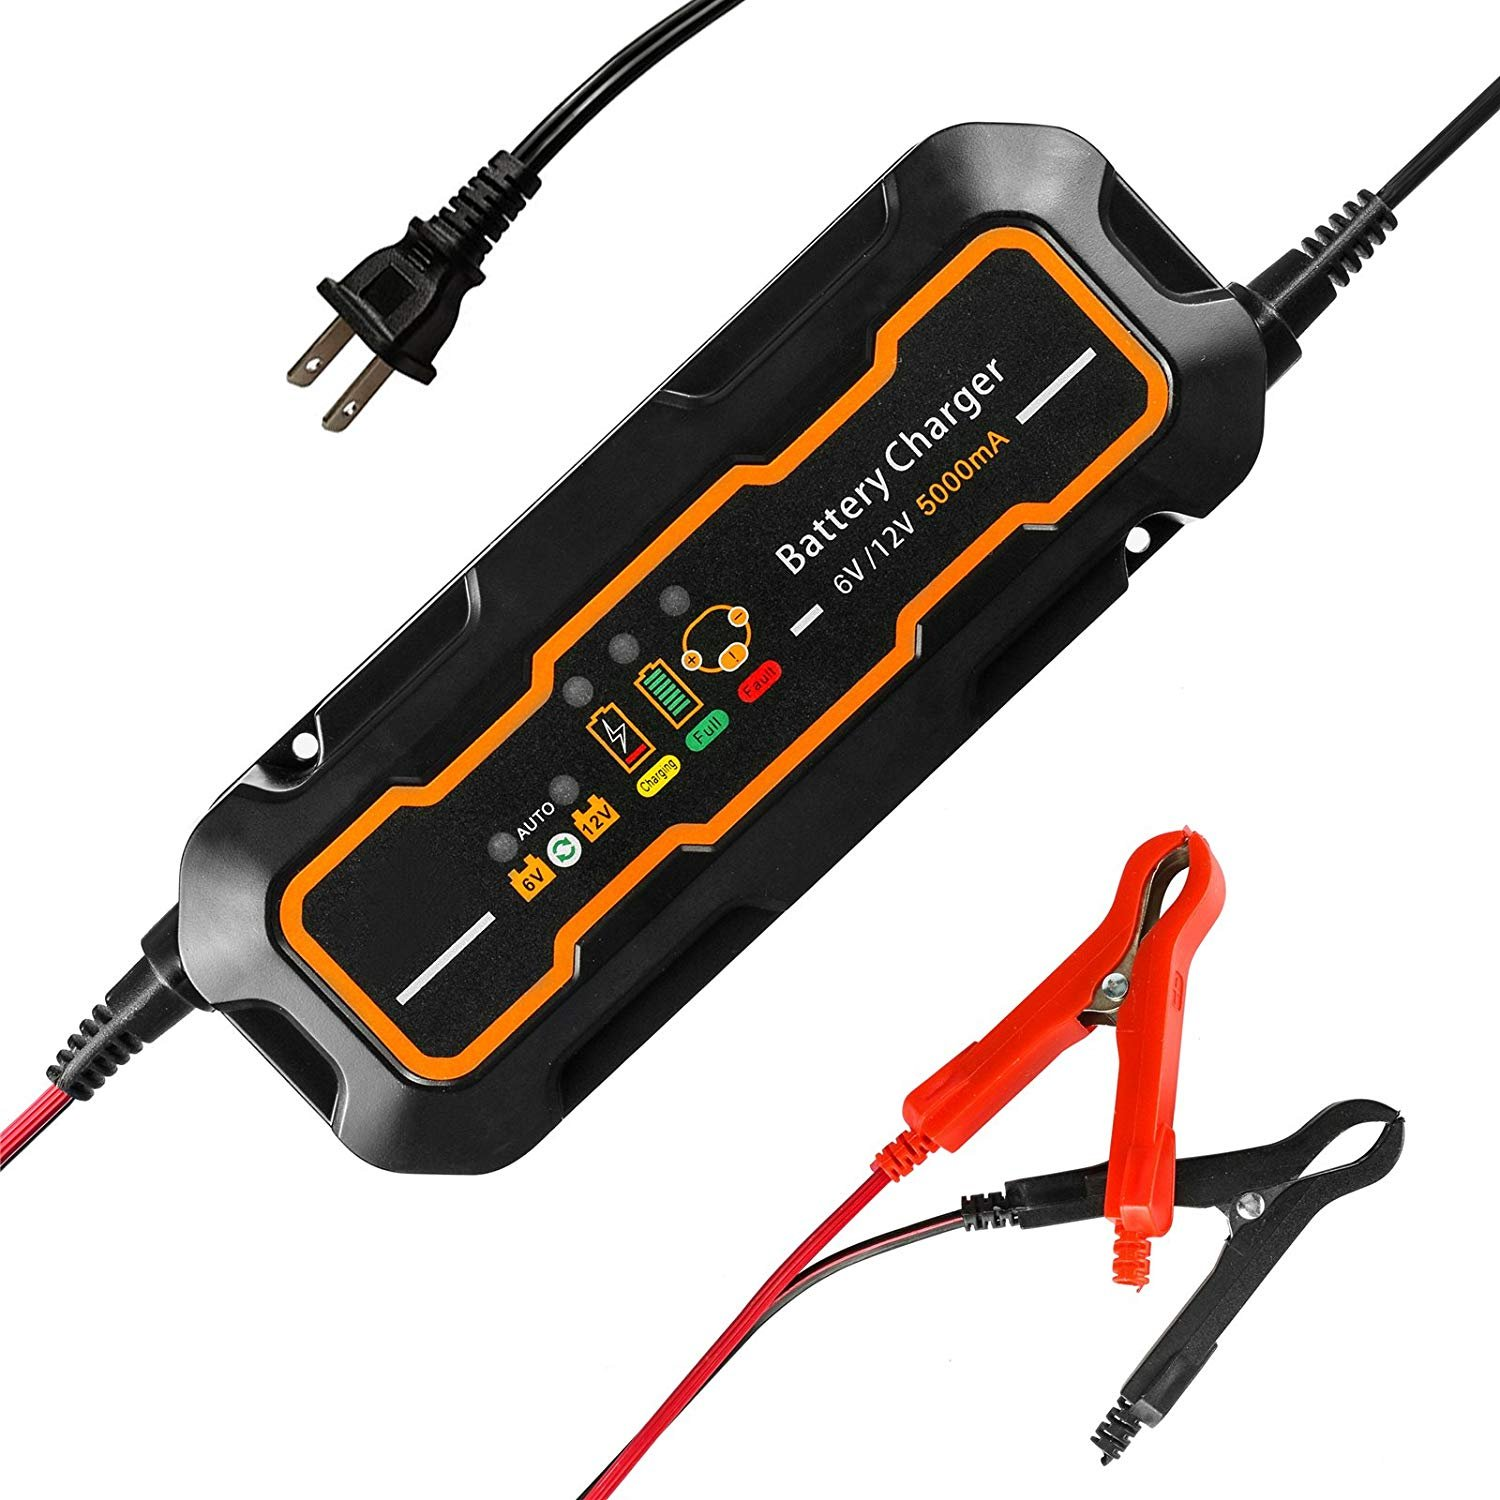 6V/12V 5A Automatic Charger/Maintainer for Cars, Motorcycles, ATVs, Rvs, Powersports, Boat and More SAILFLO JP-BC570